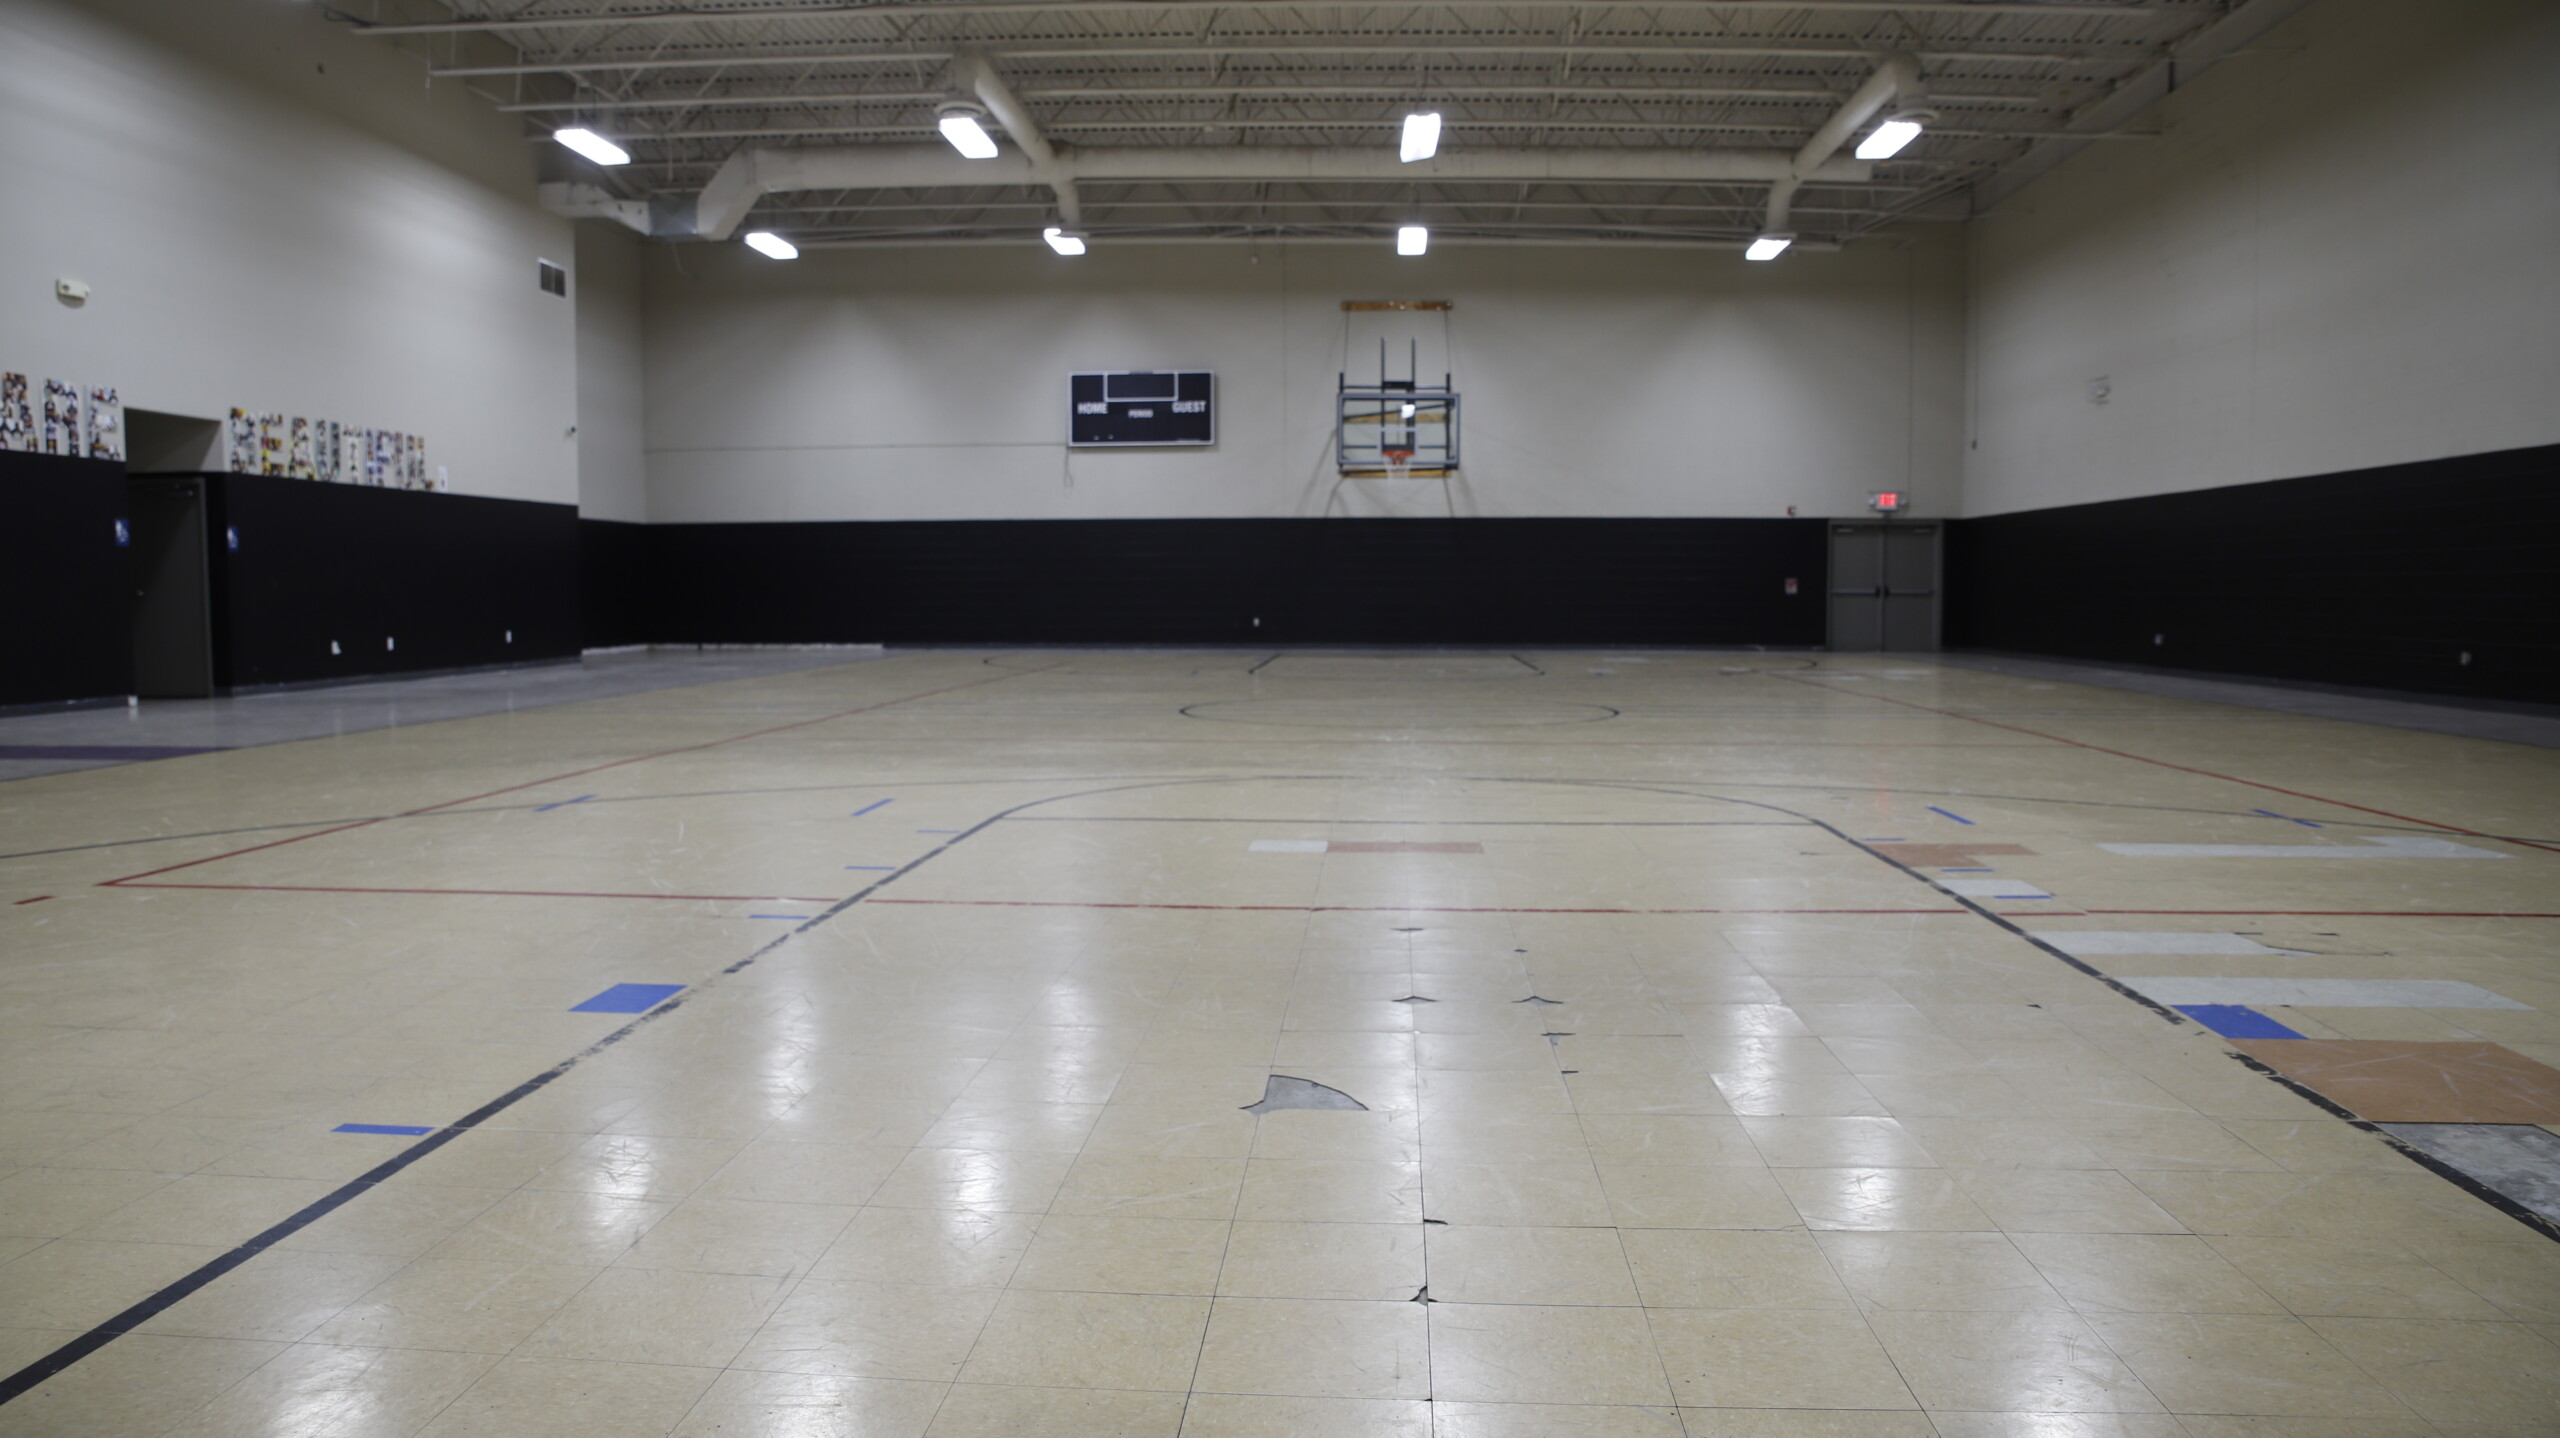 Indianapolis basketball gym gets facelift in time for March Madness